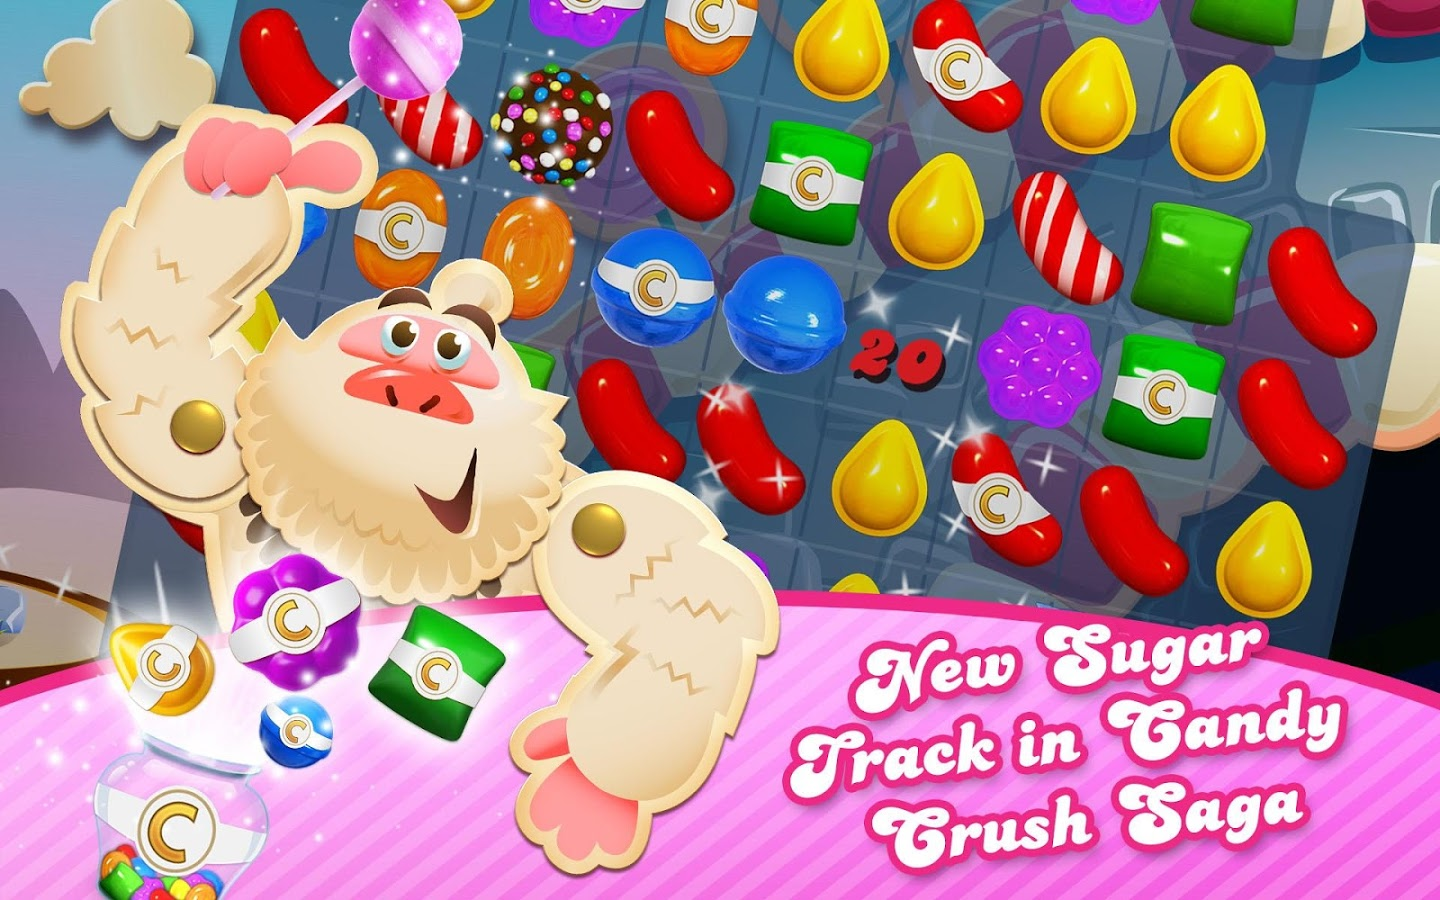 Candy Crush Saga16